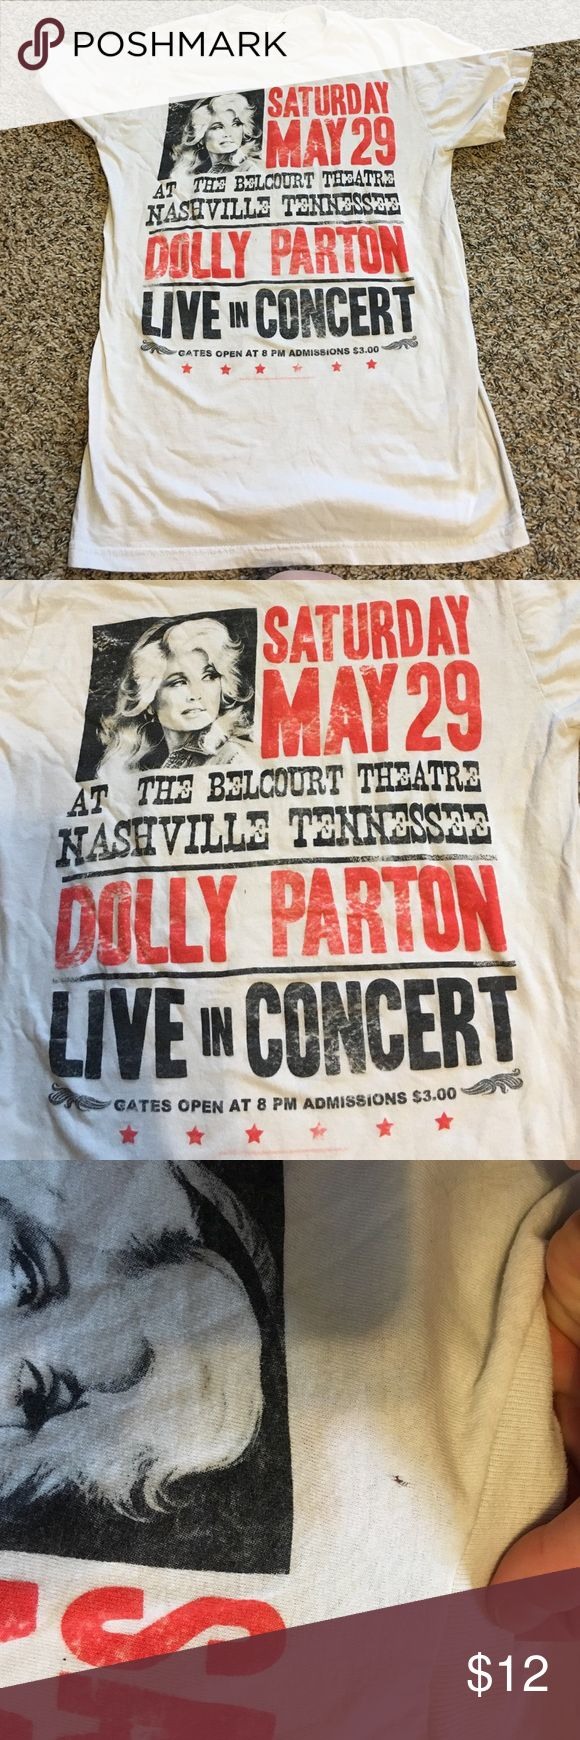 Women's XS Dolly Parton concert tan t-shirt Bought it at Urban Outfitters because I love ❤️ Dolly... XS is just too small for me. There is a small hole close to the collar. Not sure where it came from or I bought it that way. Besides the hole is in great condition. Urban Outfitters Tops Tees - Short Sleeve